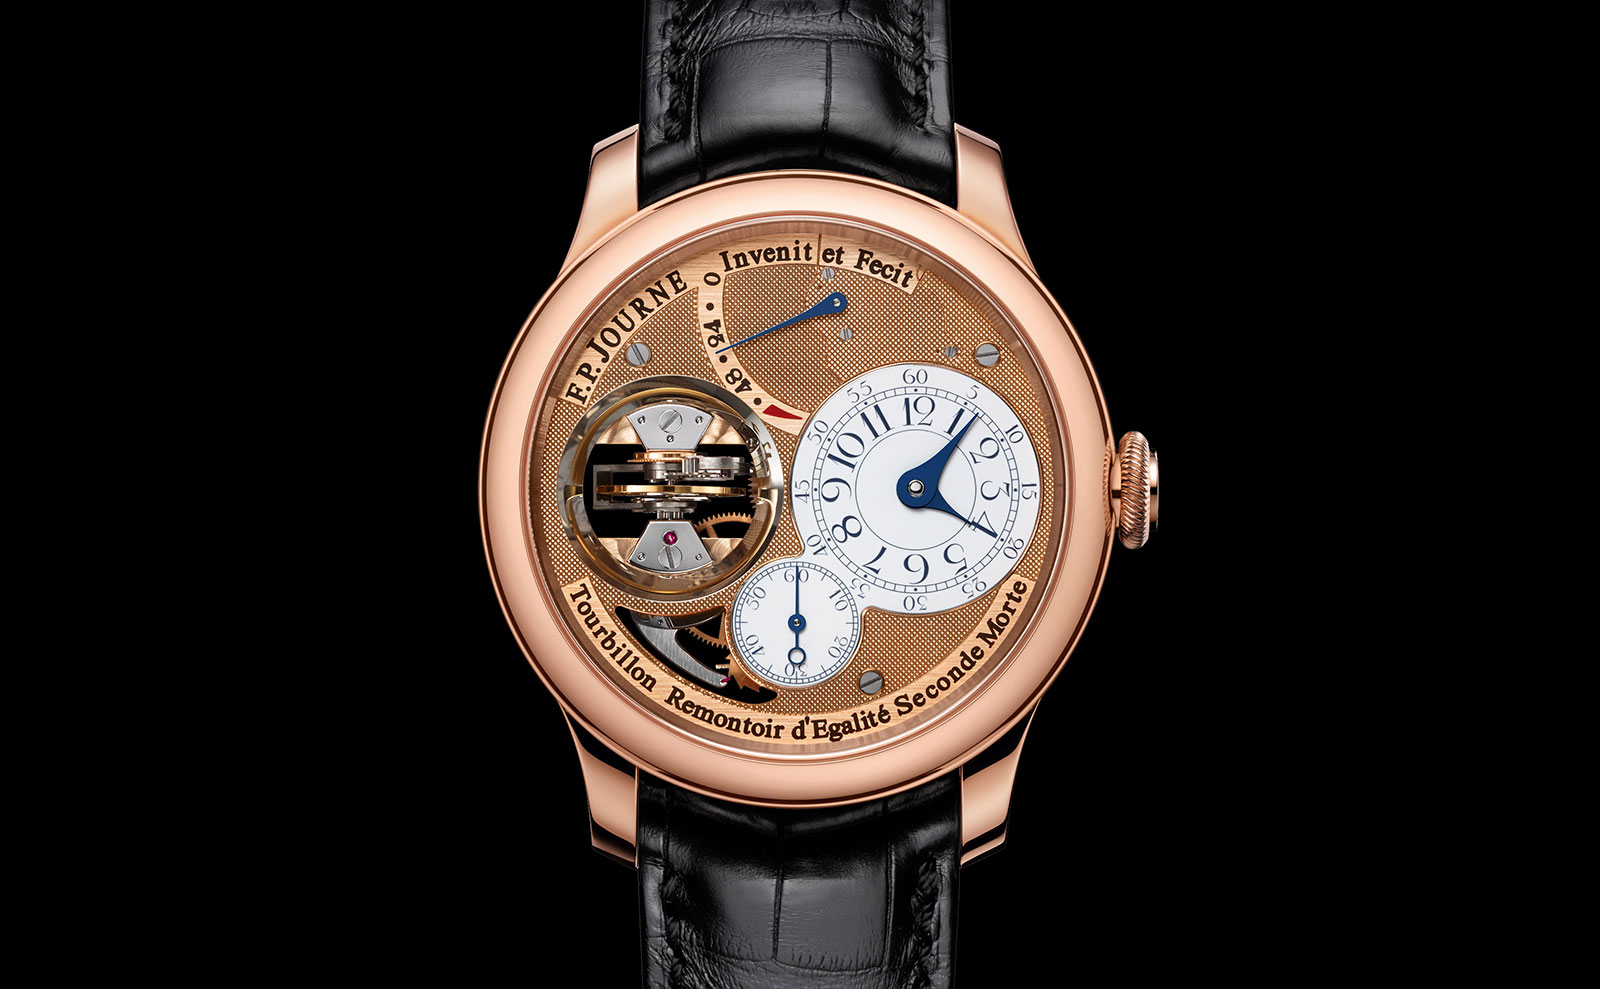 FP Journe Tourbillon Souverain Vertical 4